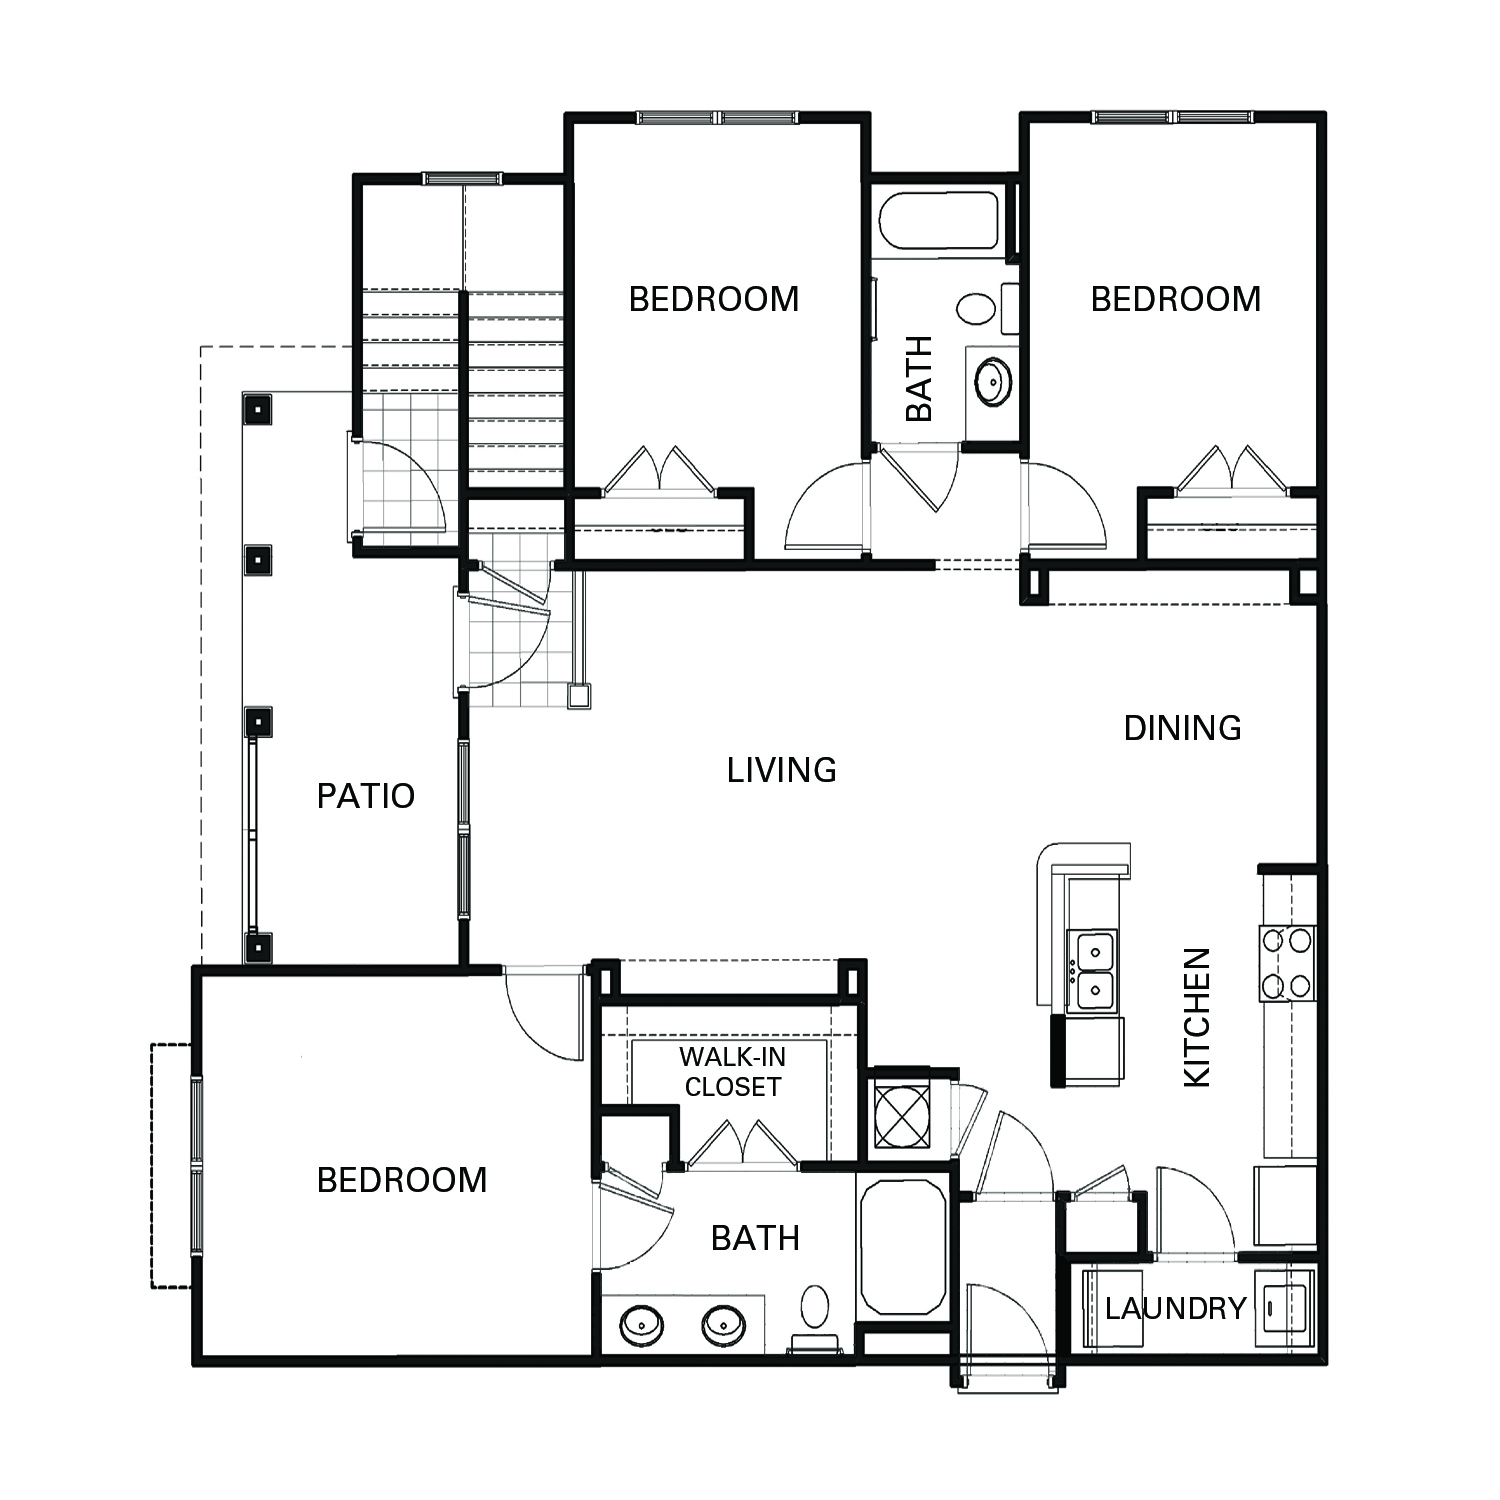 Three bedroom two bathroom C1 floorplan at The Apartments at Blakeney in Charlotte, NC